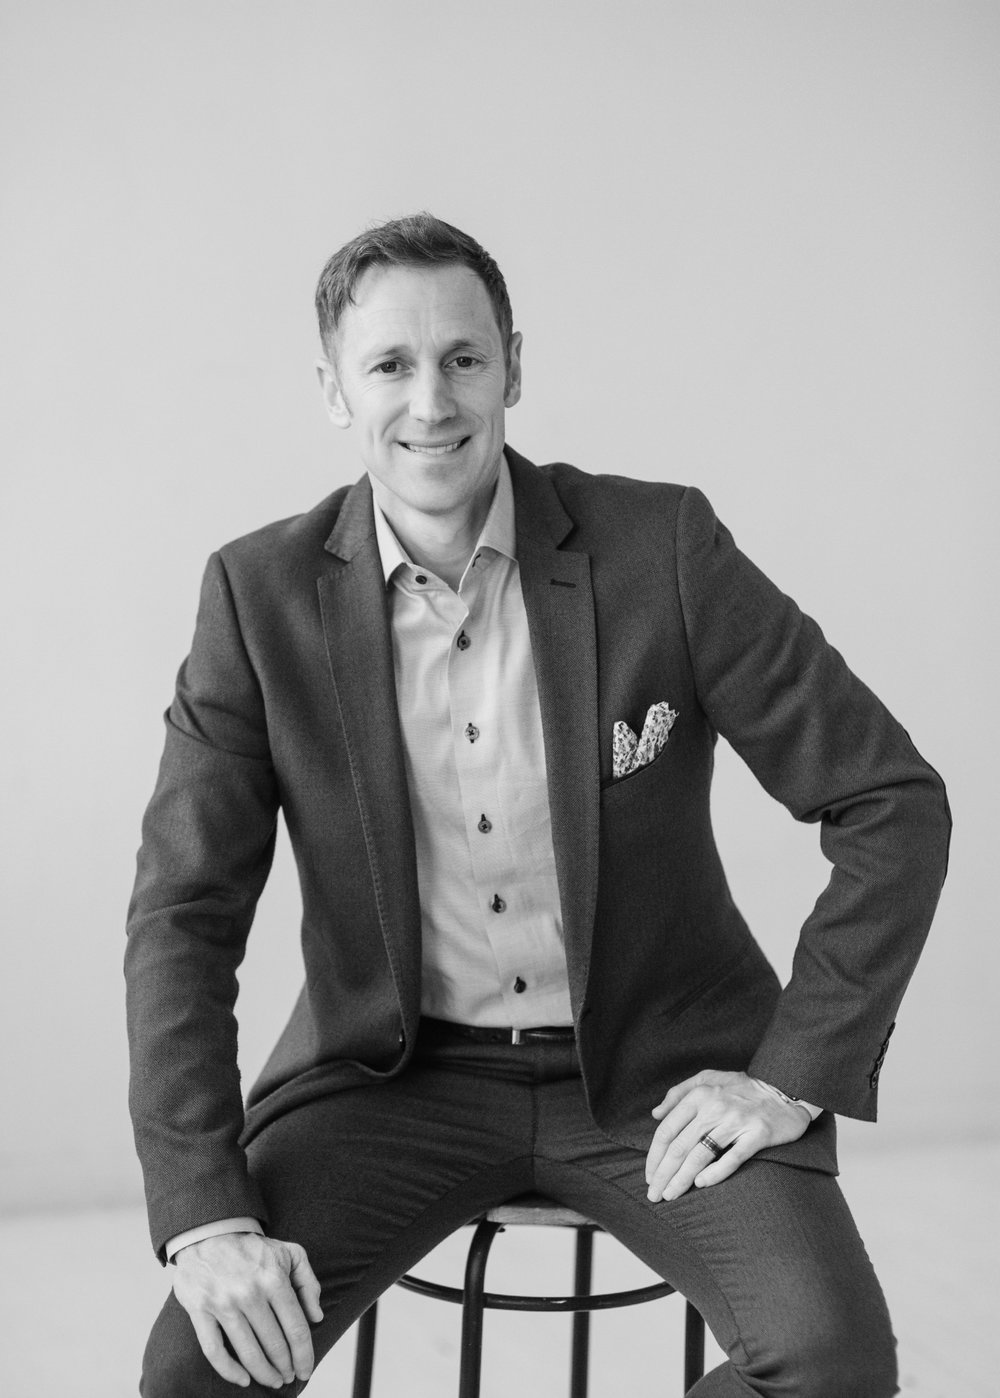 - His expertise and success has earned Sean a leading voice in residential real estate.